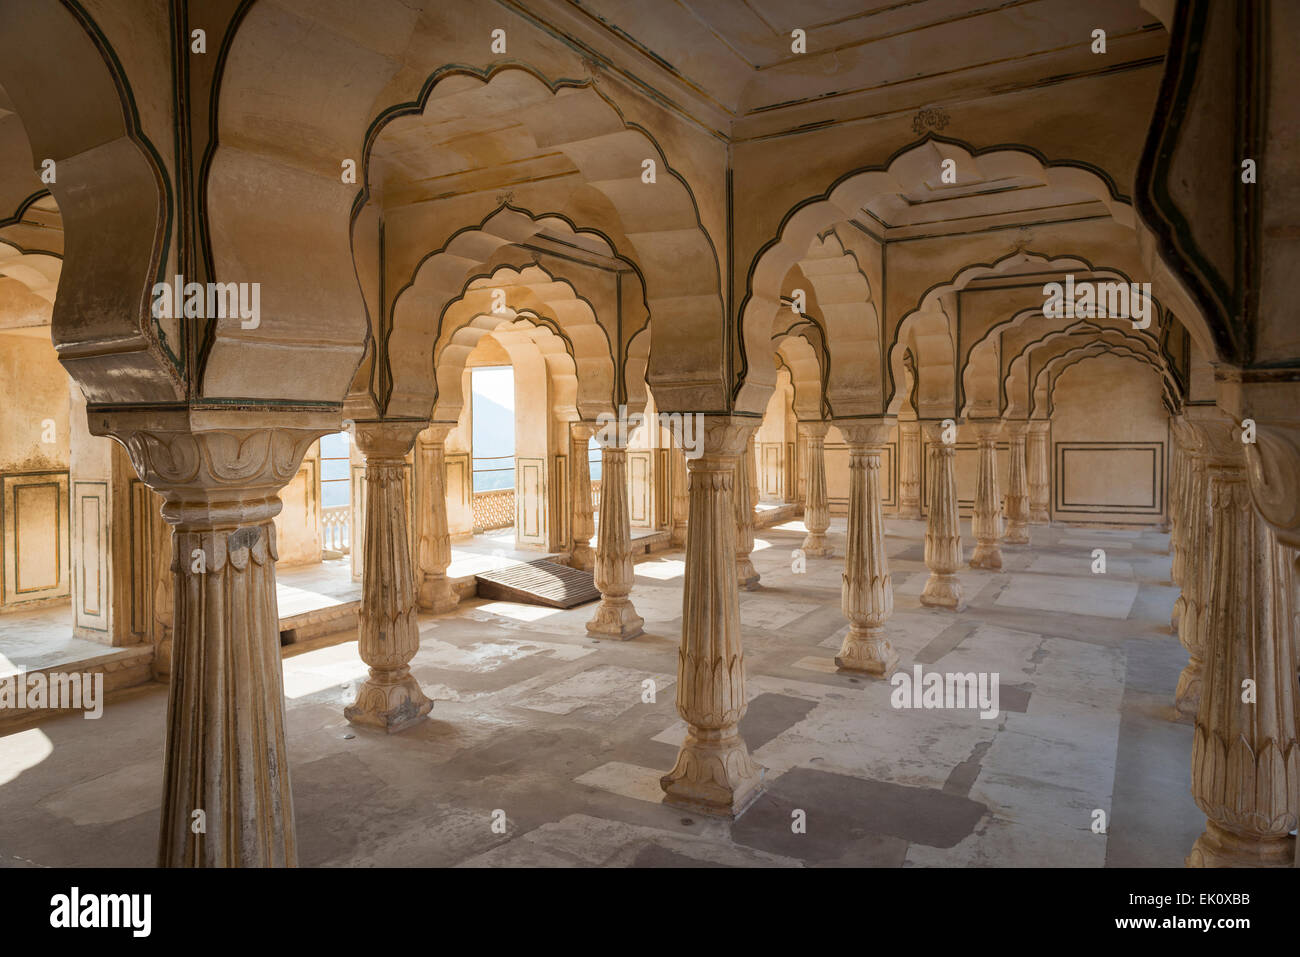 A colonnaded space in Amber Fort Palace near Jaipur, Rajasthan, India - Stock Image